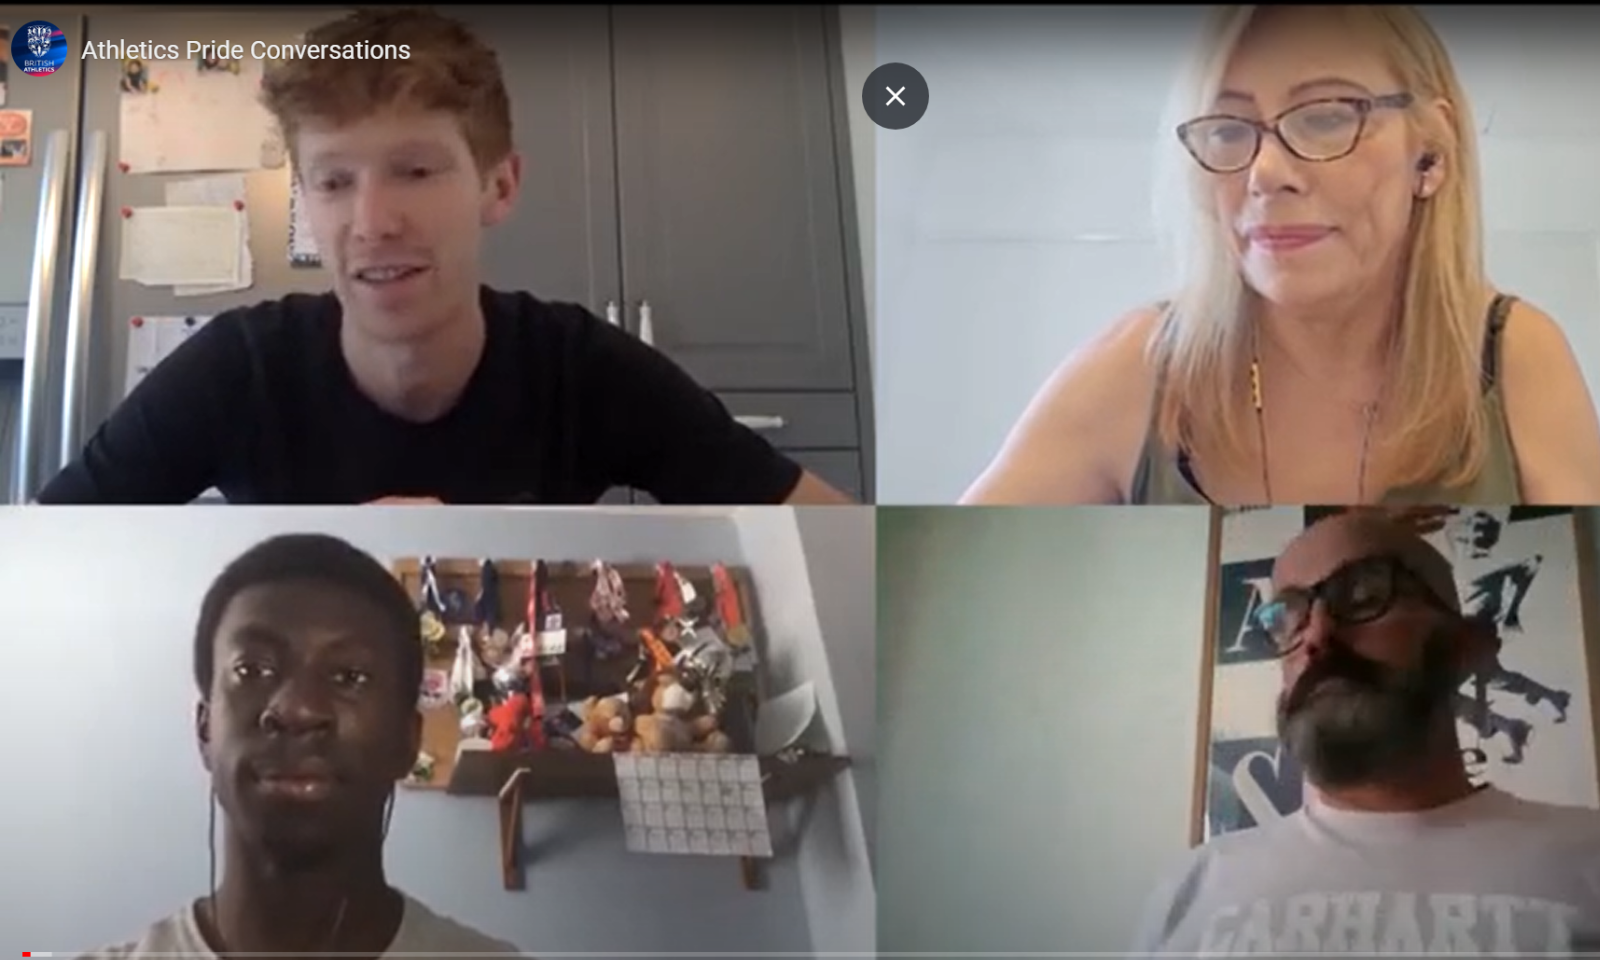 Four members of the Athletics Pride Network caught up via video call